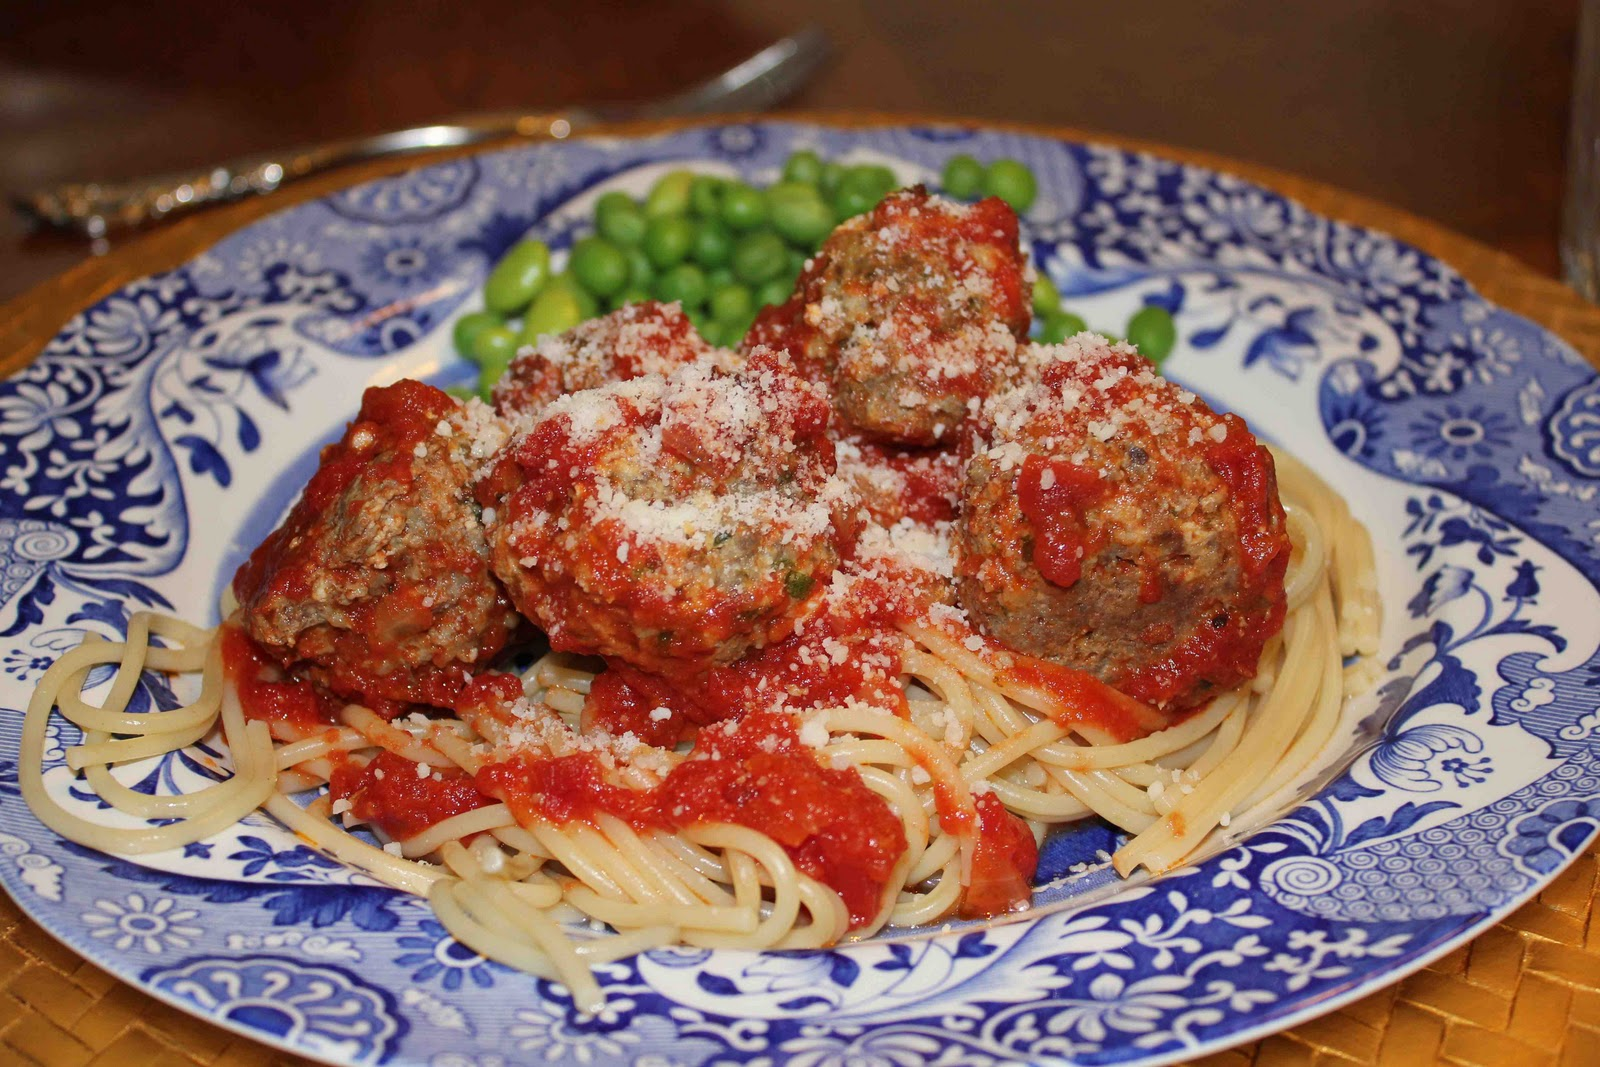 Classic Beef Meatballs in Classic Tomato Sauce from The Meatball Shop ...